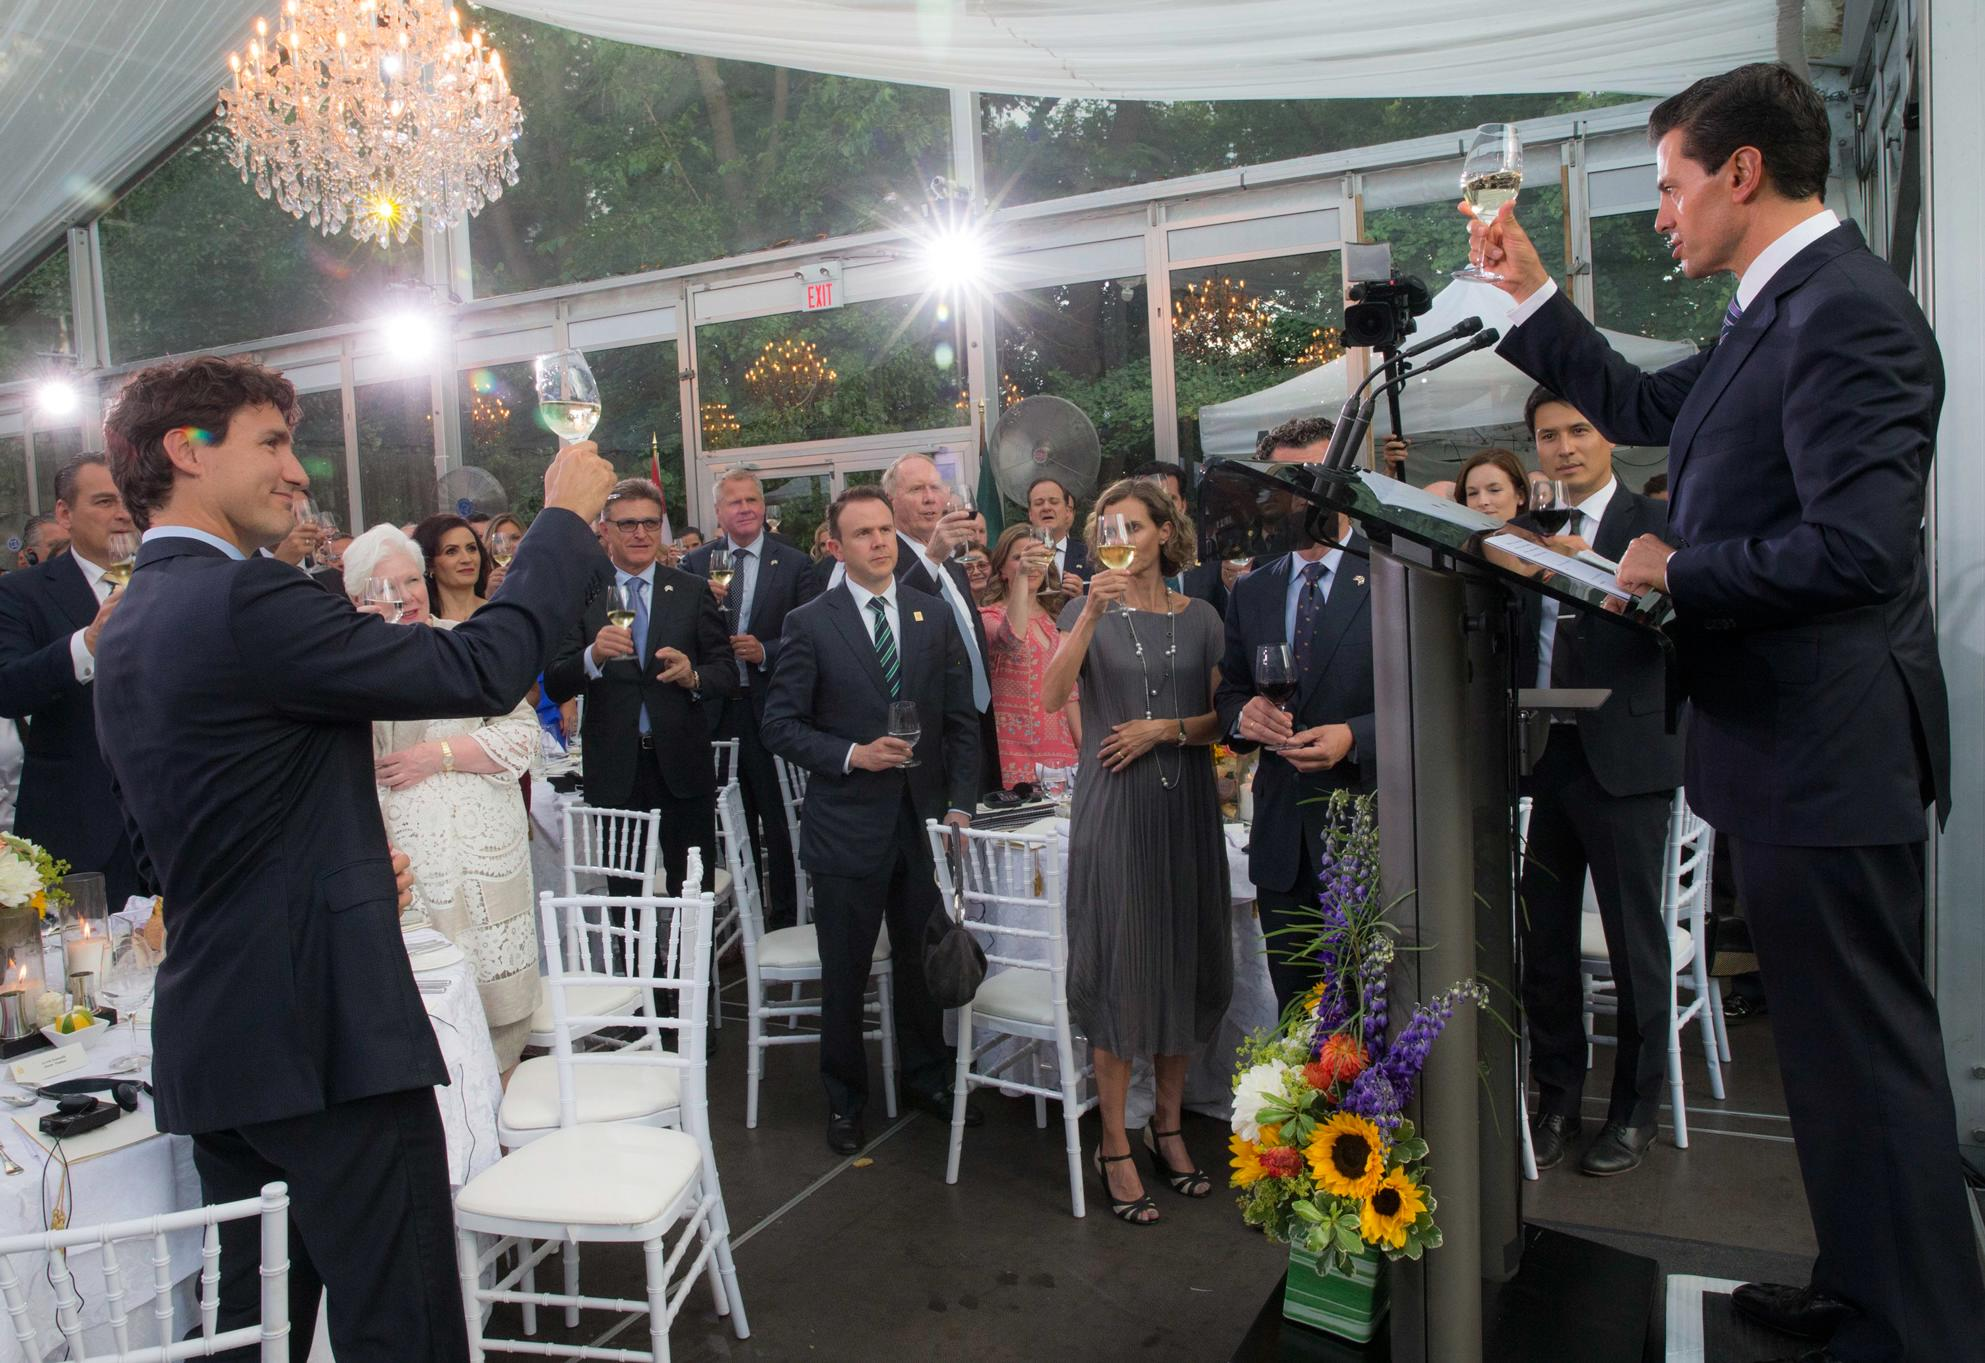 In Toronto, the president attended a dinner hosted in his honor by Prime Minister of Canada Justin Trudeau.